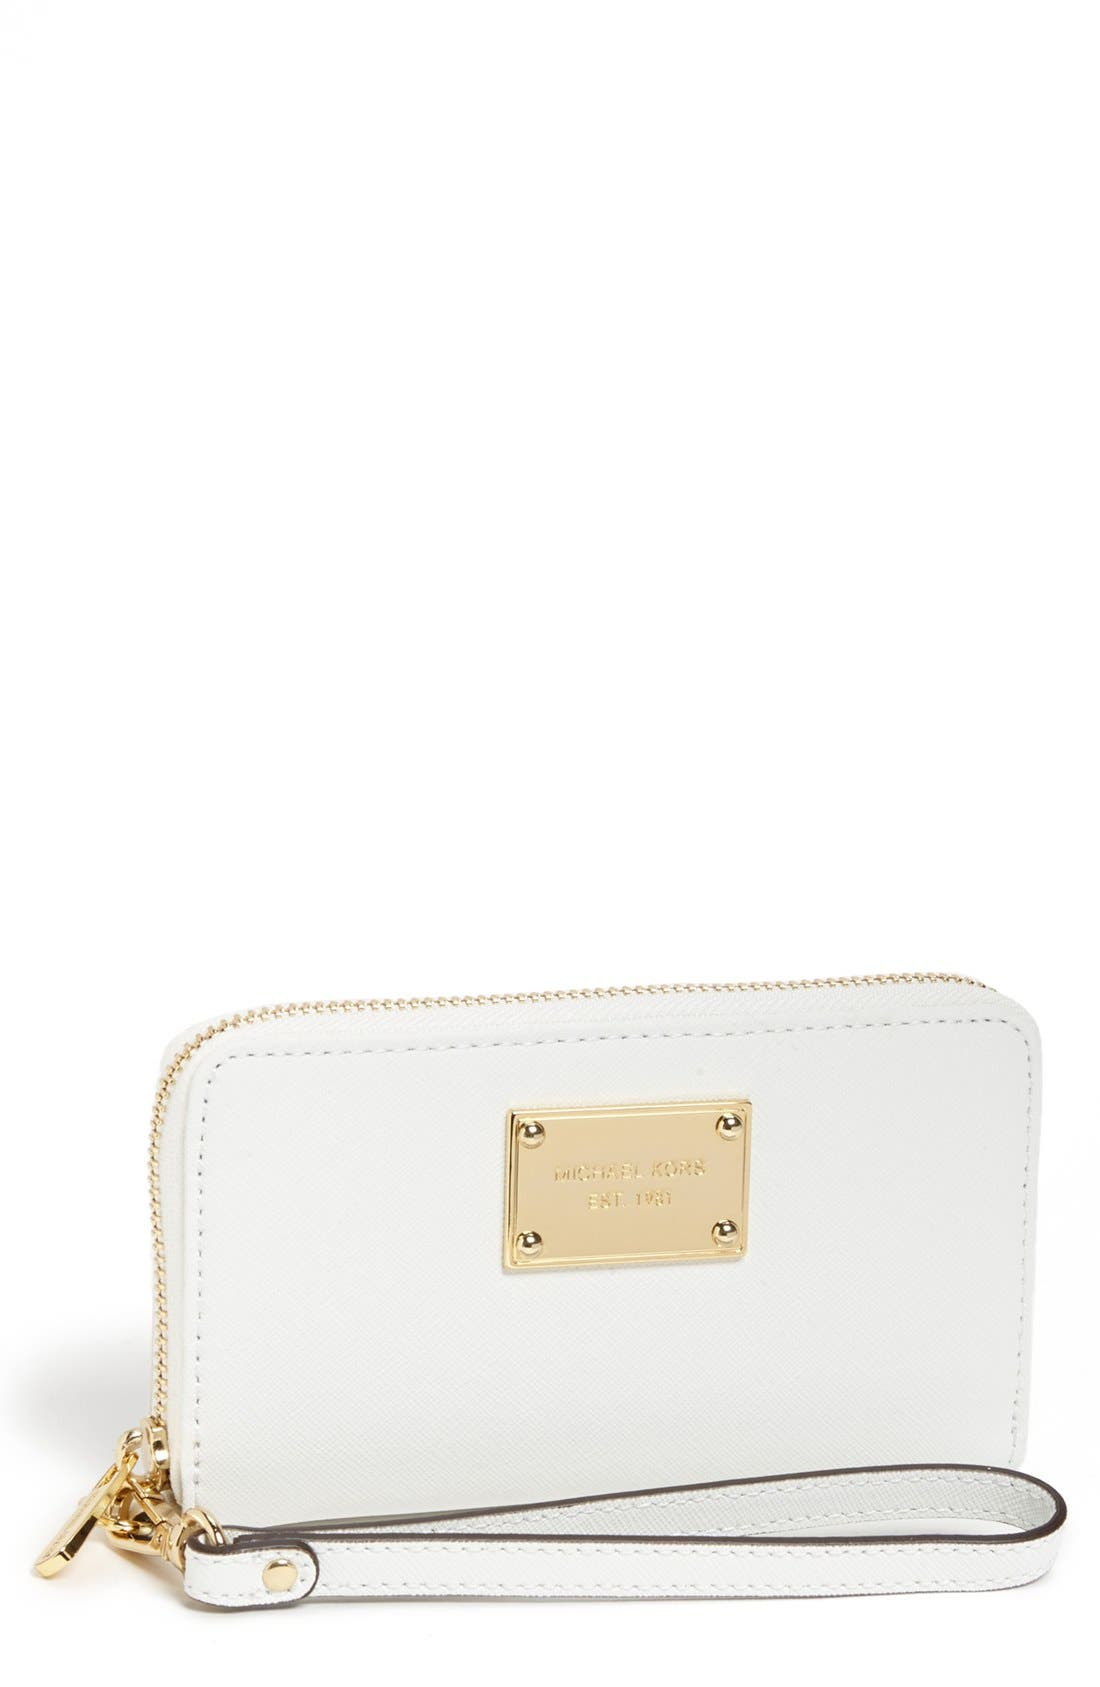 Alternate Image 1 Selected - MICHAEL Michael Kors 'Saffiano' Phone Wallet